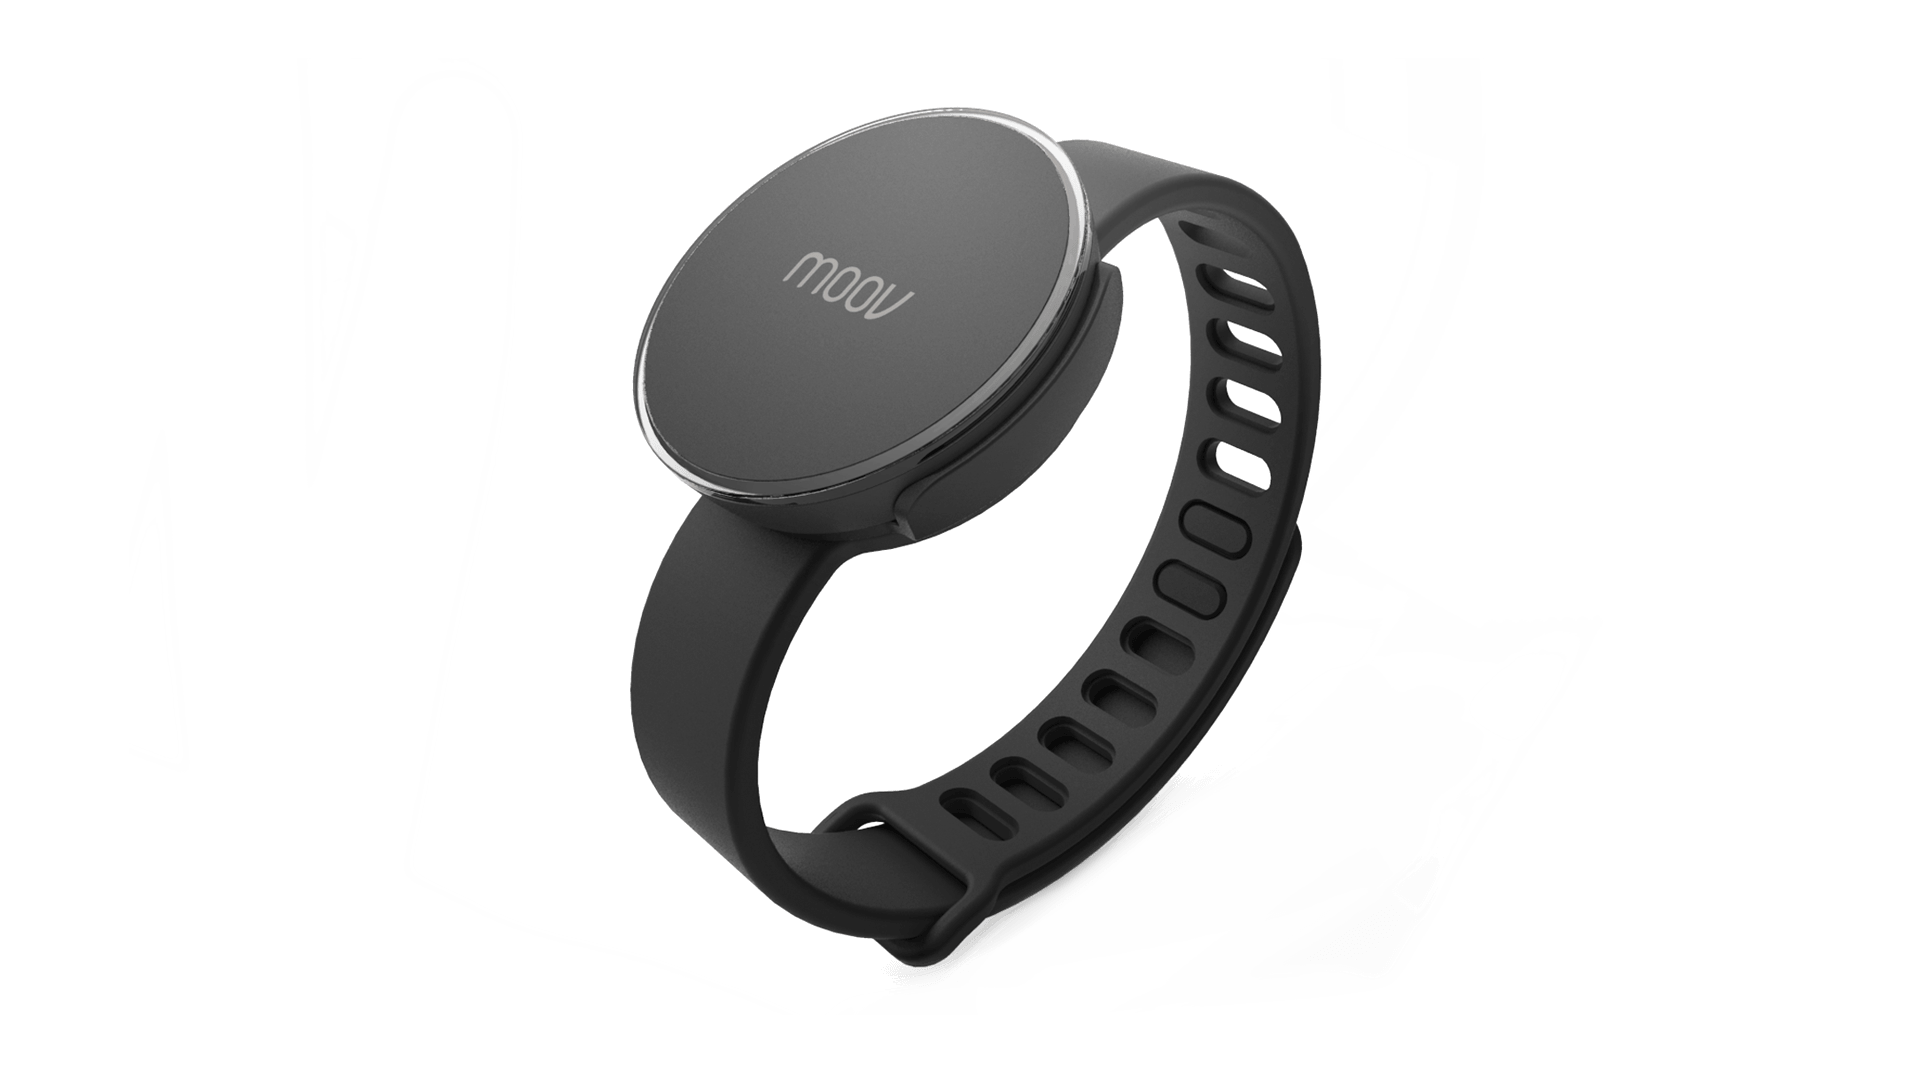 Could This Fitness Device Motivate You - Moov Fitness ...